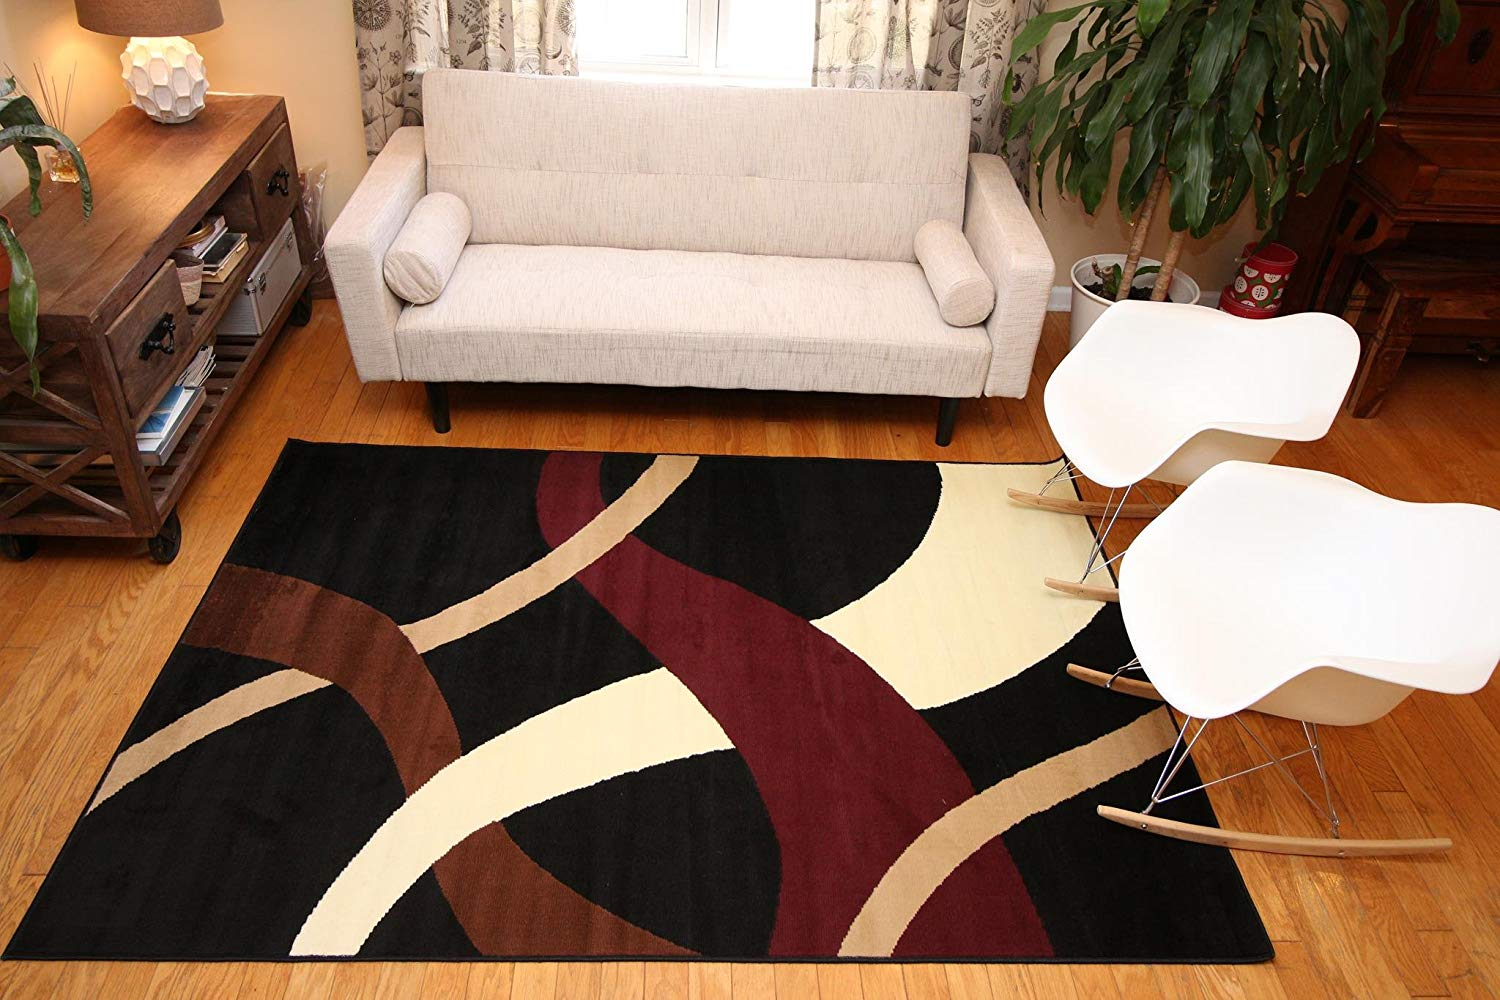 Rugs That Are Too Small Making Your Home Look Cheap